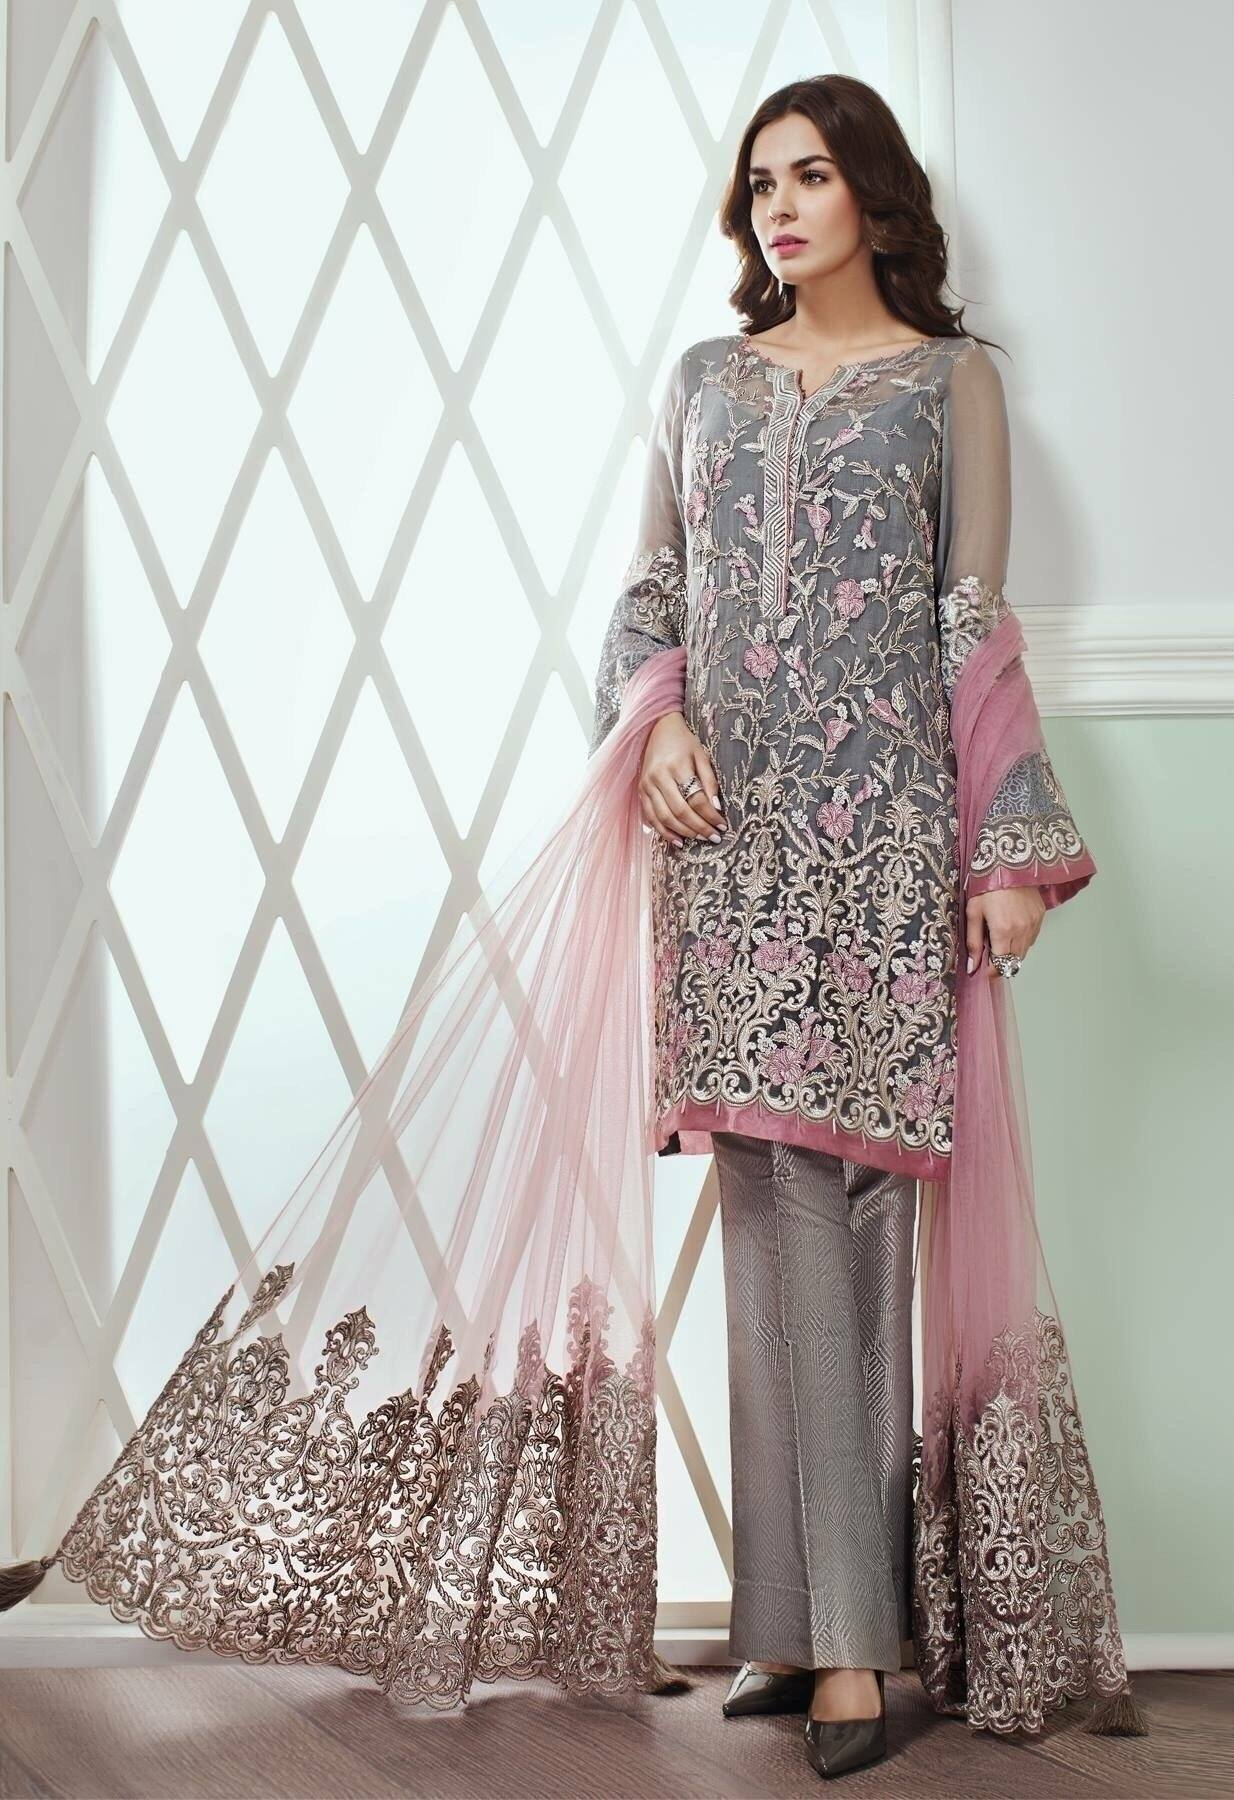 Jazmin 04-Heavy Embroided pure Chiffon Unstiched 3pc dress with embroided net dupatta - gracestore.pk